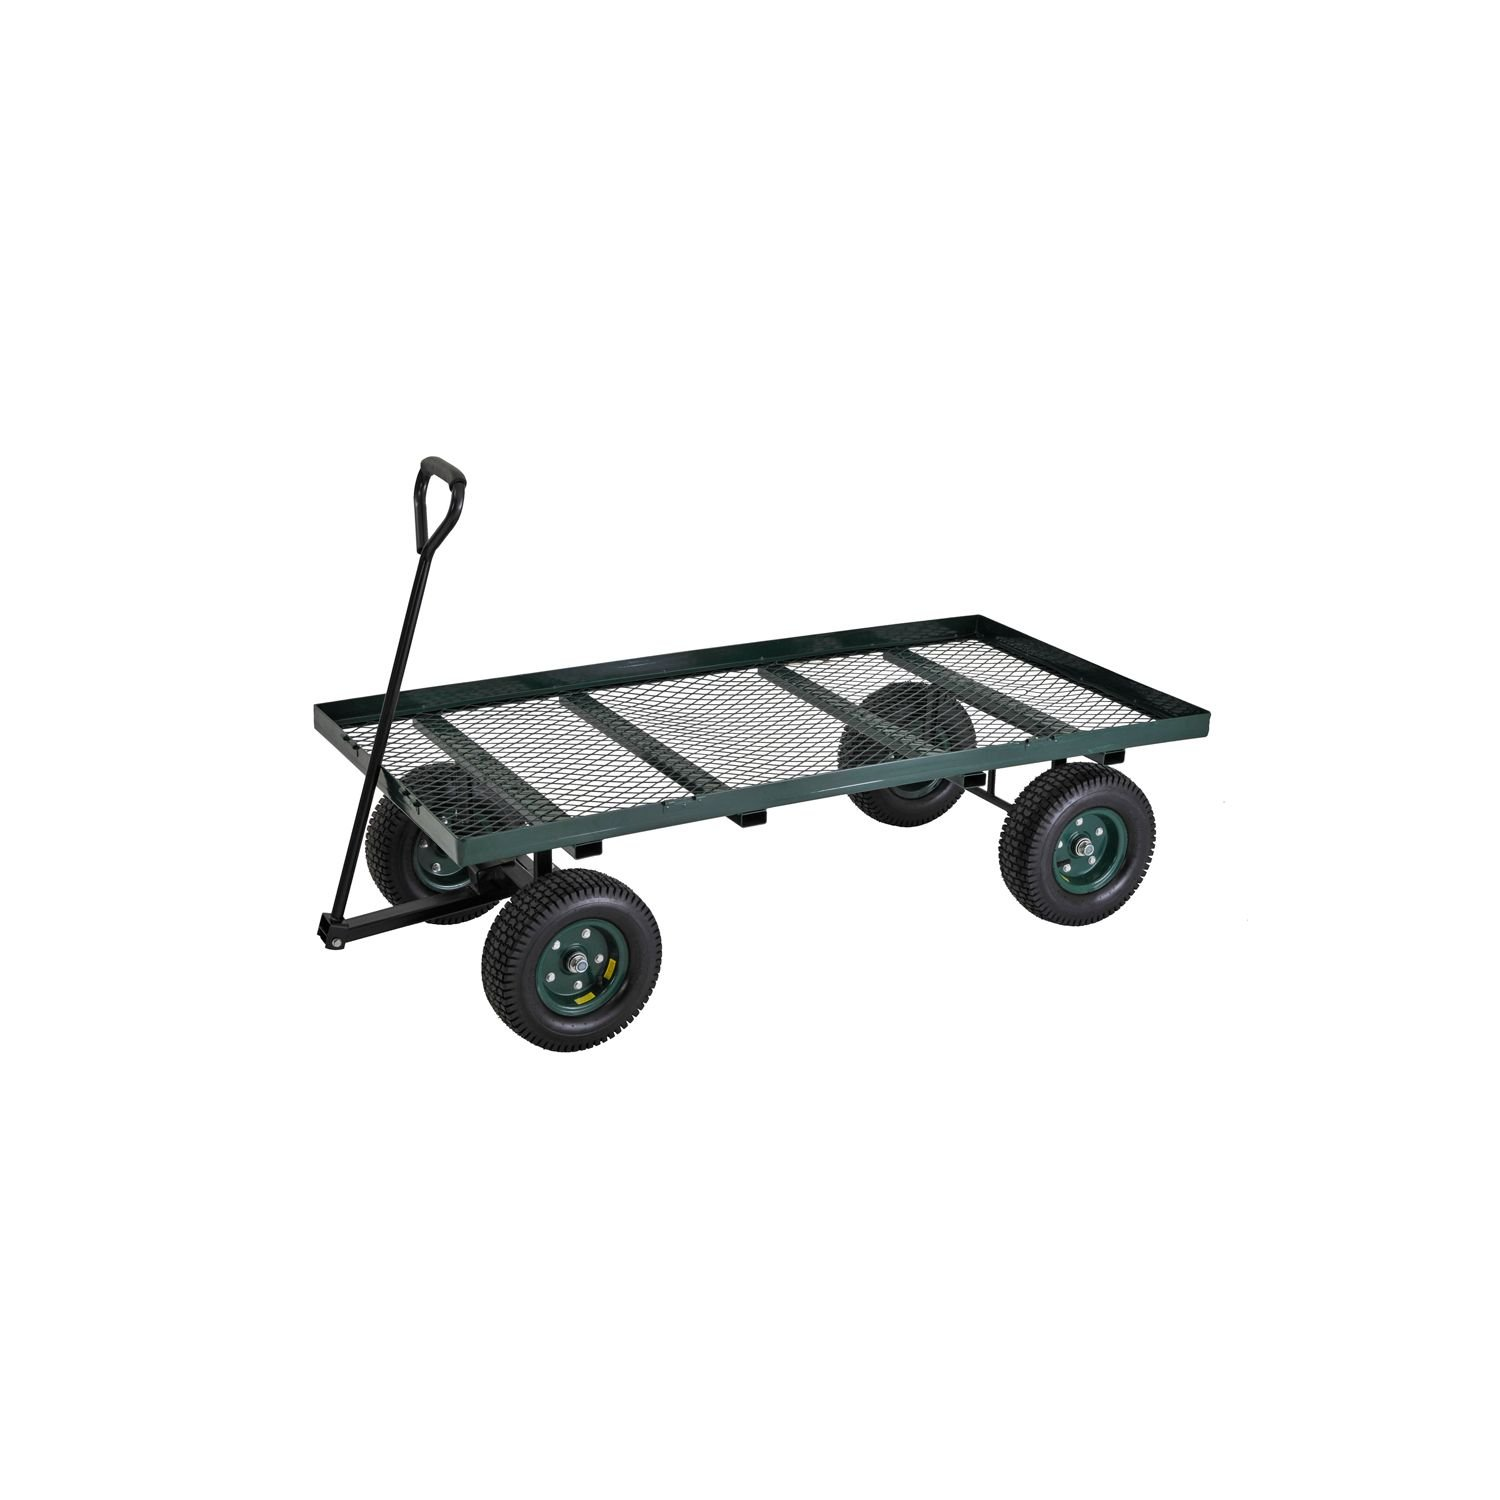 Sandusky Lee FW6036 Green Heavy Duty Steel Flat Wagon, 800 lbs Capacity, 60'' Length x 36'' Width x 17'' Height